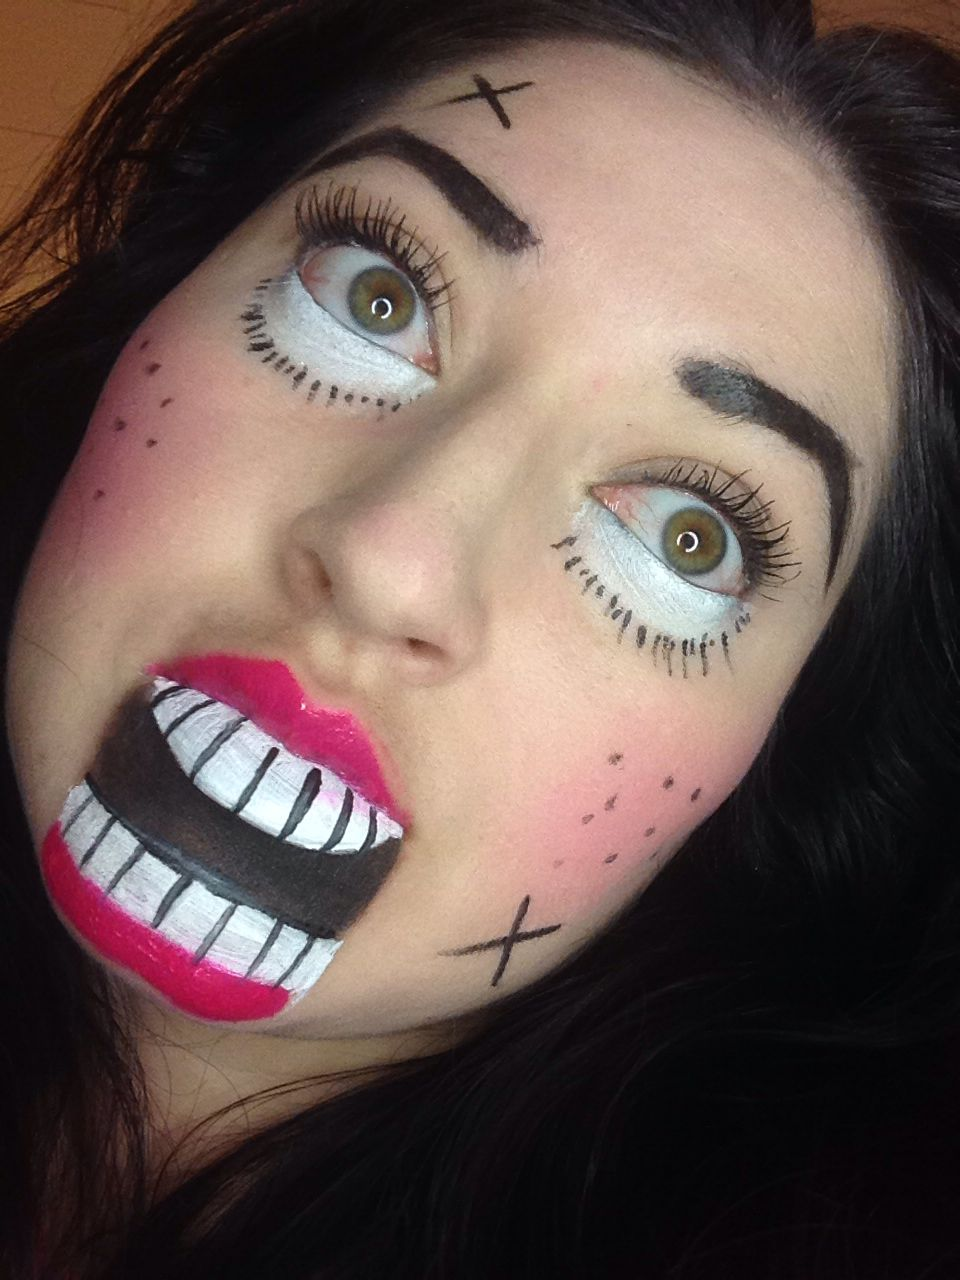 Creepy doll or crazy doll Fantasy makeup, Halloween